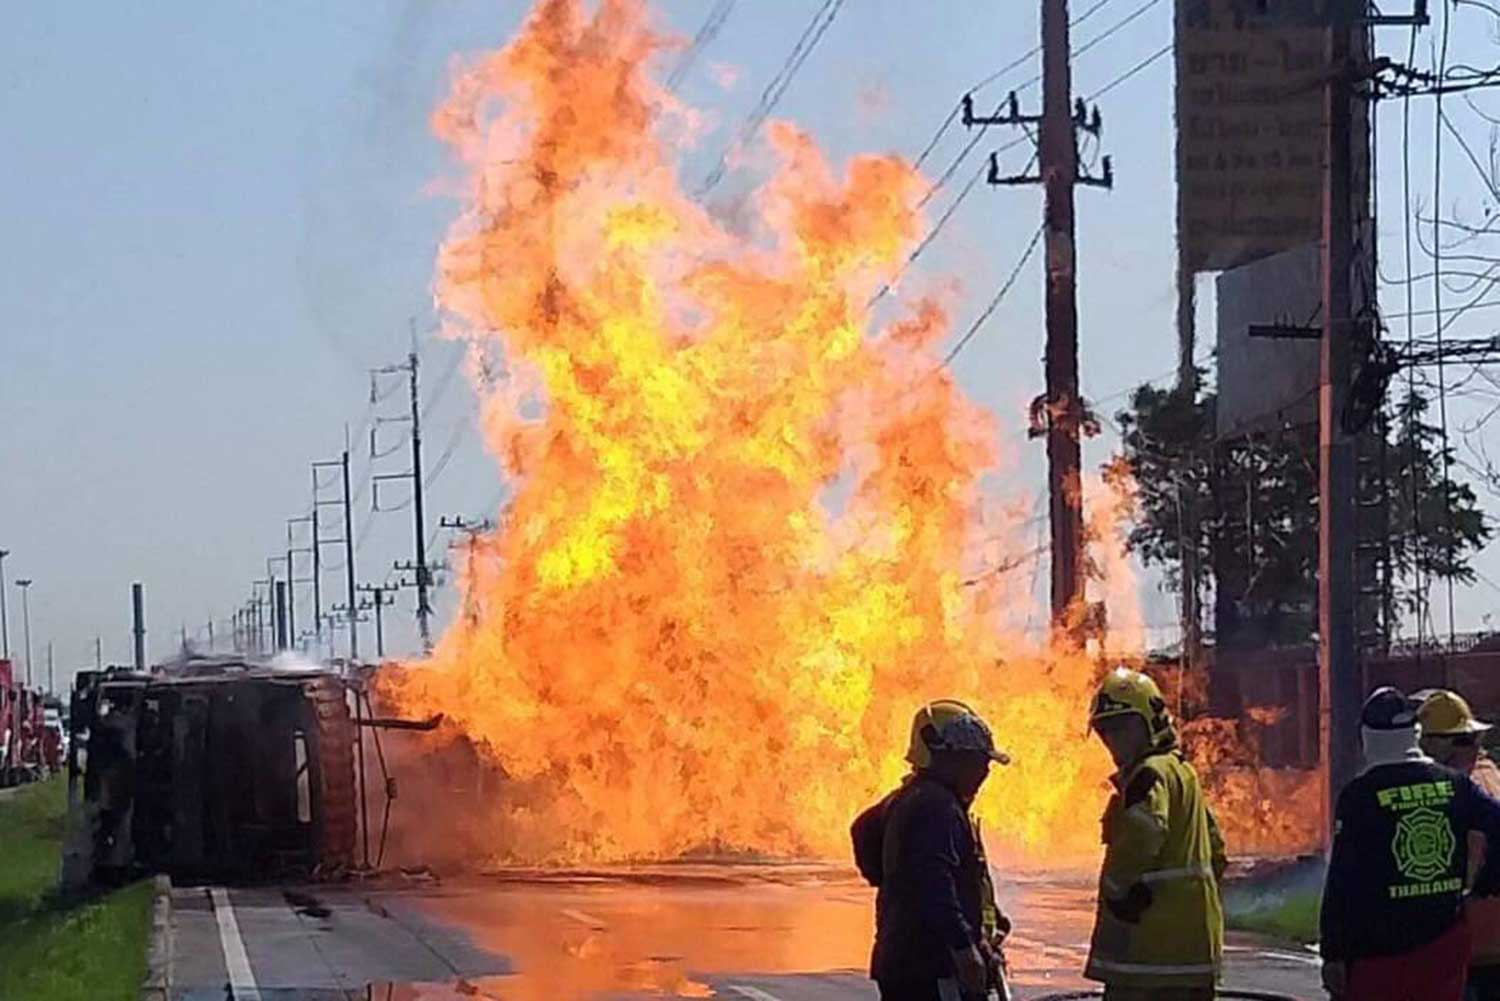 A fuel tanker carrying ethanol goes up in flames after it overturns in Wang Noi district of Ayutthaya on Friday morning. The driver scrambled to safety with only minor injuries. (Supplied photo via Sunthorn Pongpao)